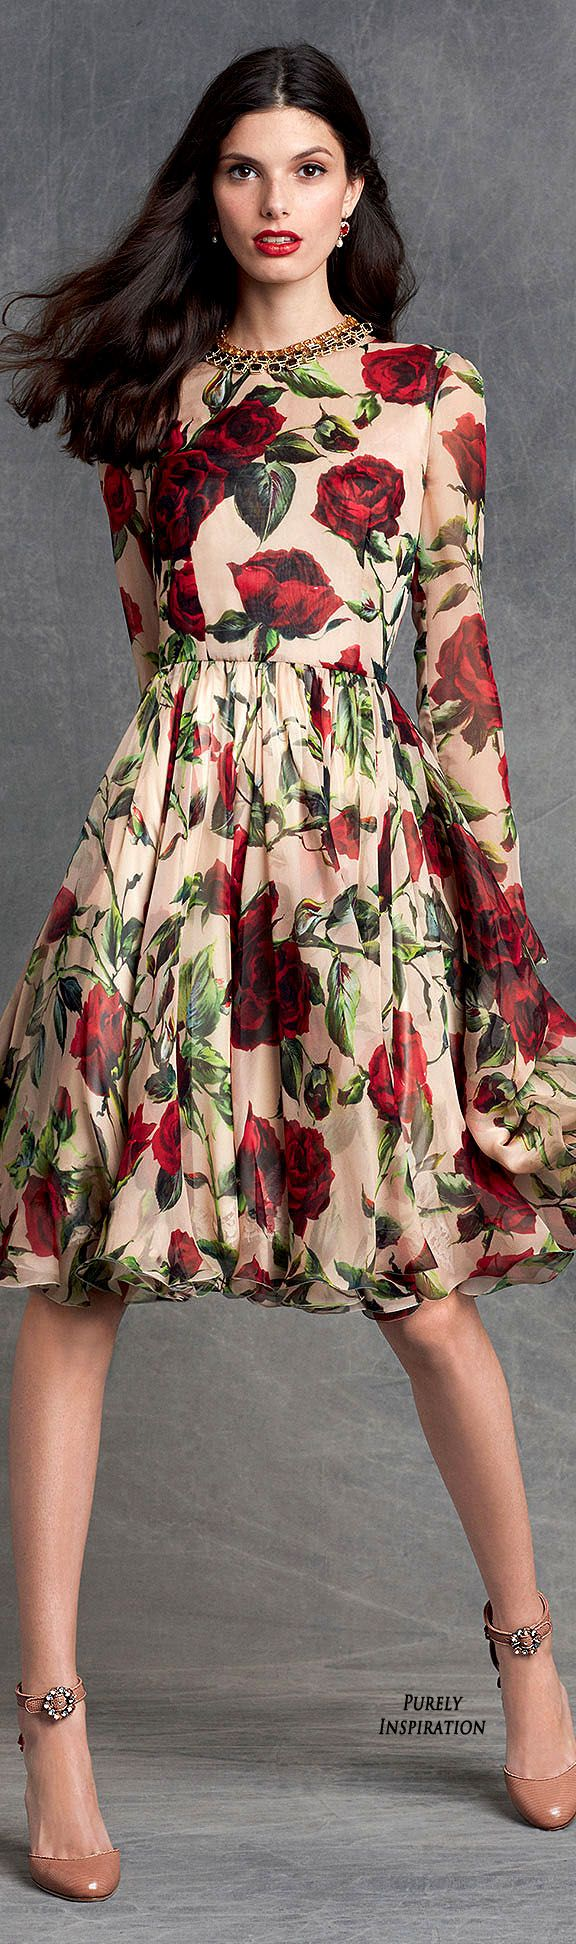 Dolce&Gabbana Winter 2016 Collection Women's Fashion RTW | Purely Inspiration                                                                                                                                                     More